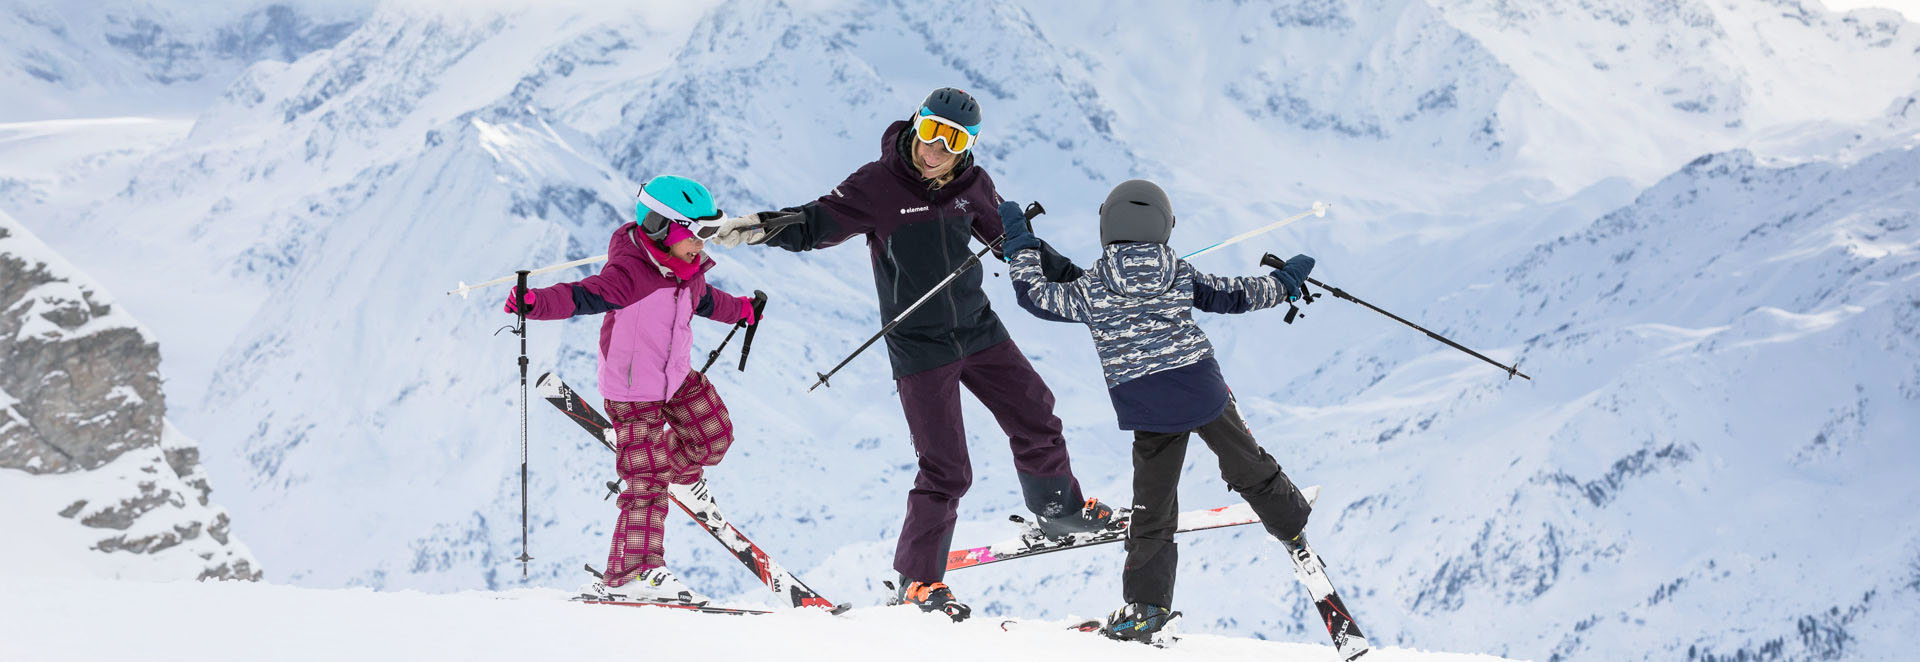 Verbier Private ski lessons